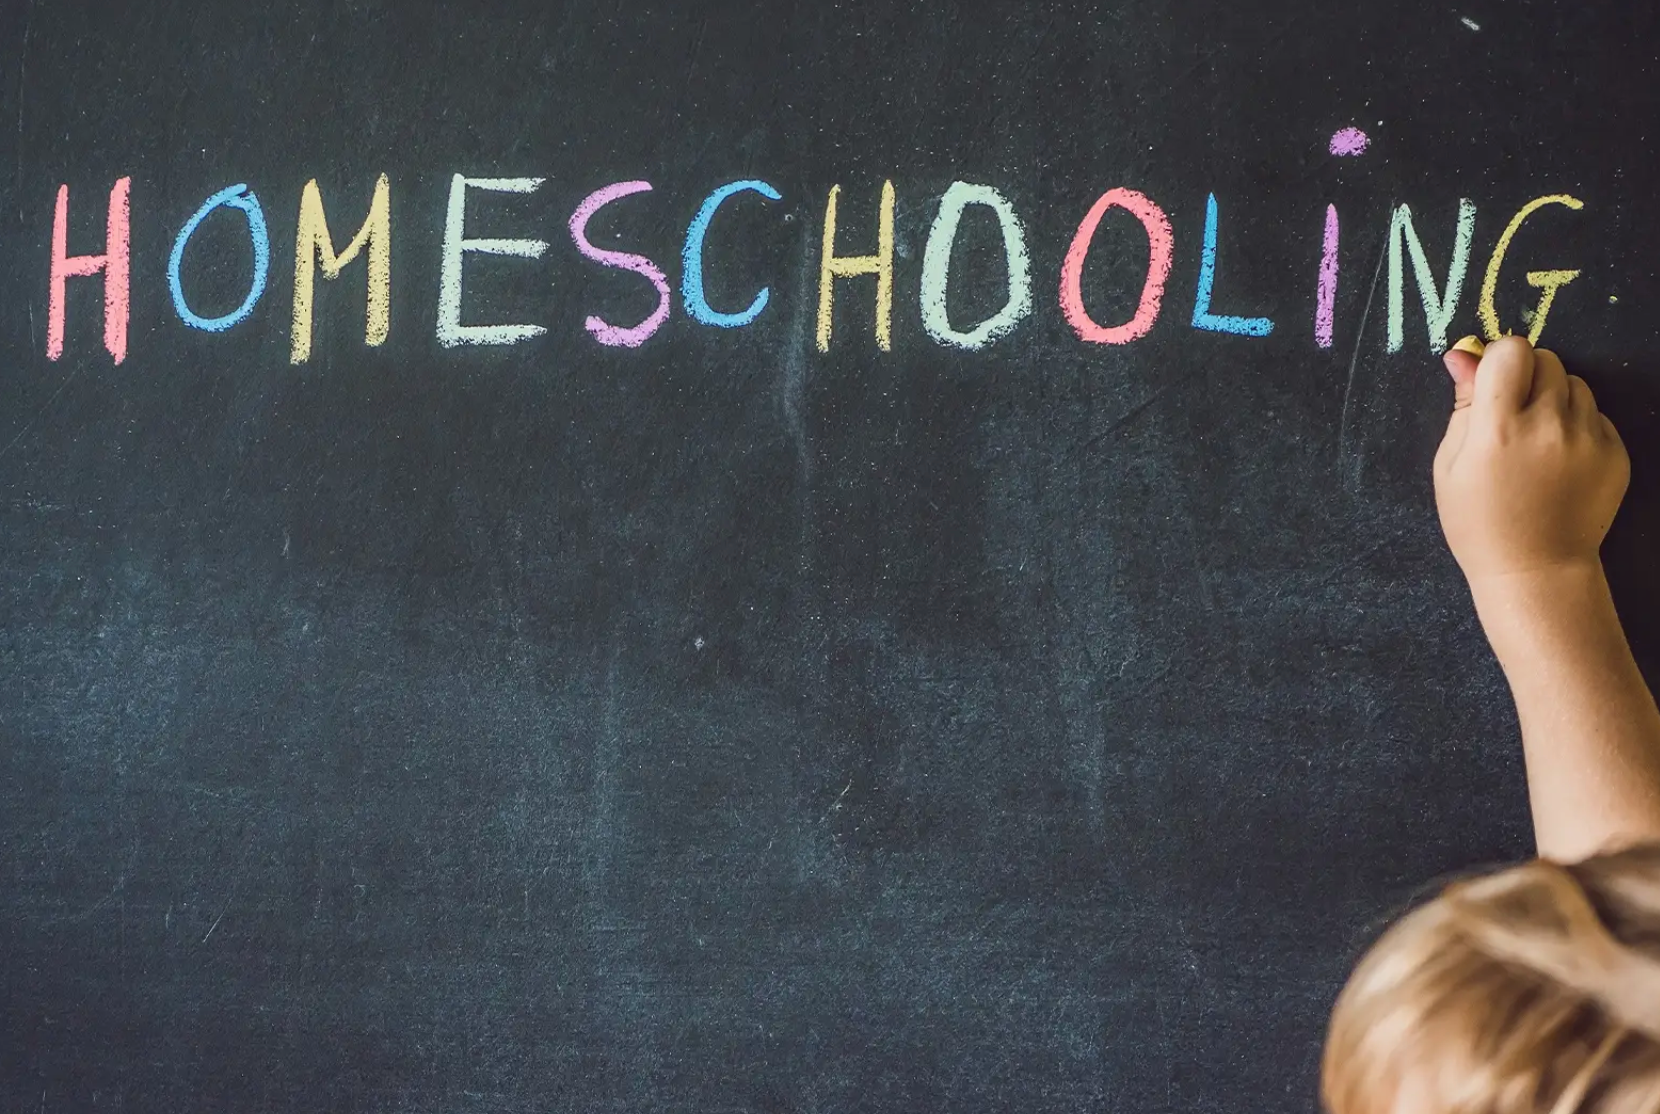 Homeschooling the lessons I've learned | Housing strategic consultancy